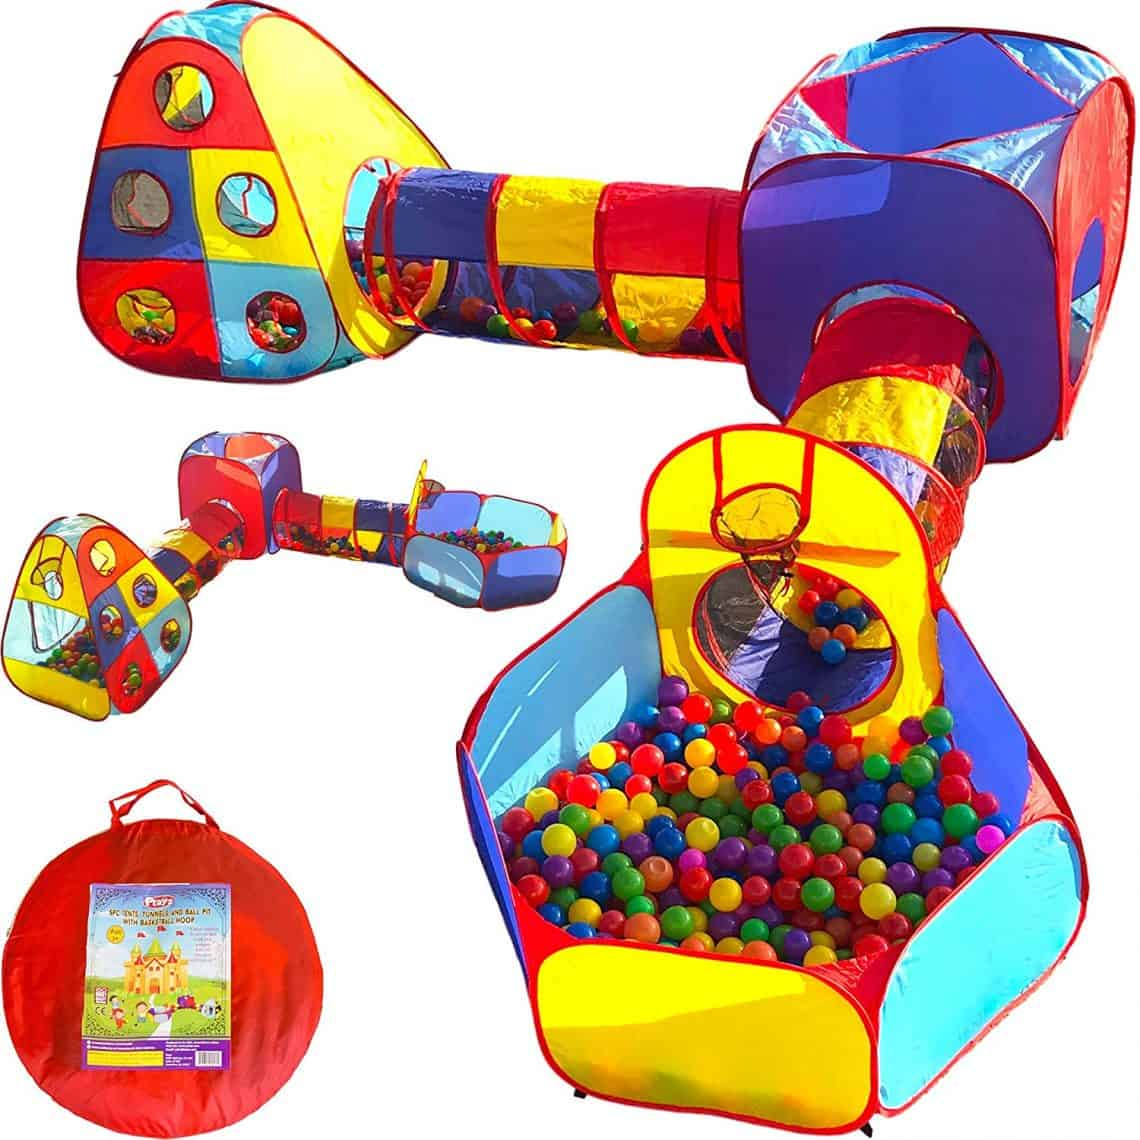 91QnwGNAqSL. SL1500  1140x1140 - Rainy Day Activities to Keep Kids Busy and Mom Hands Free